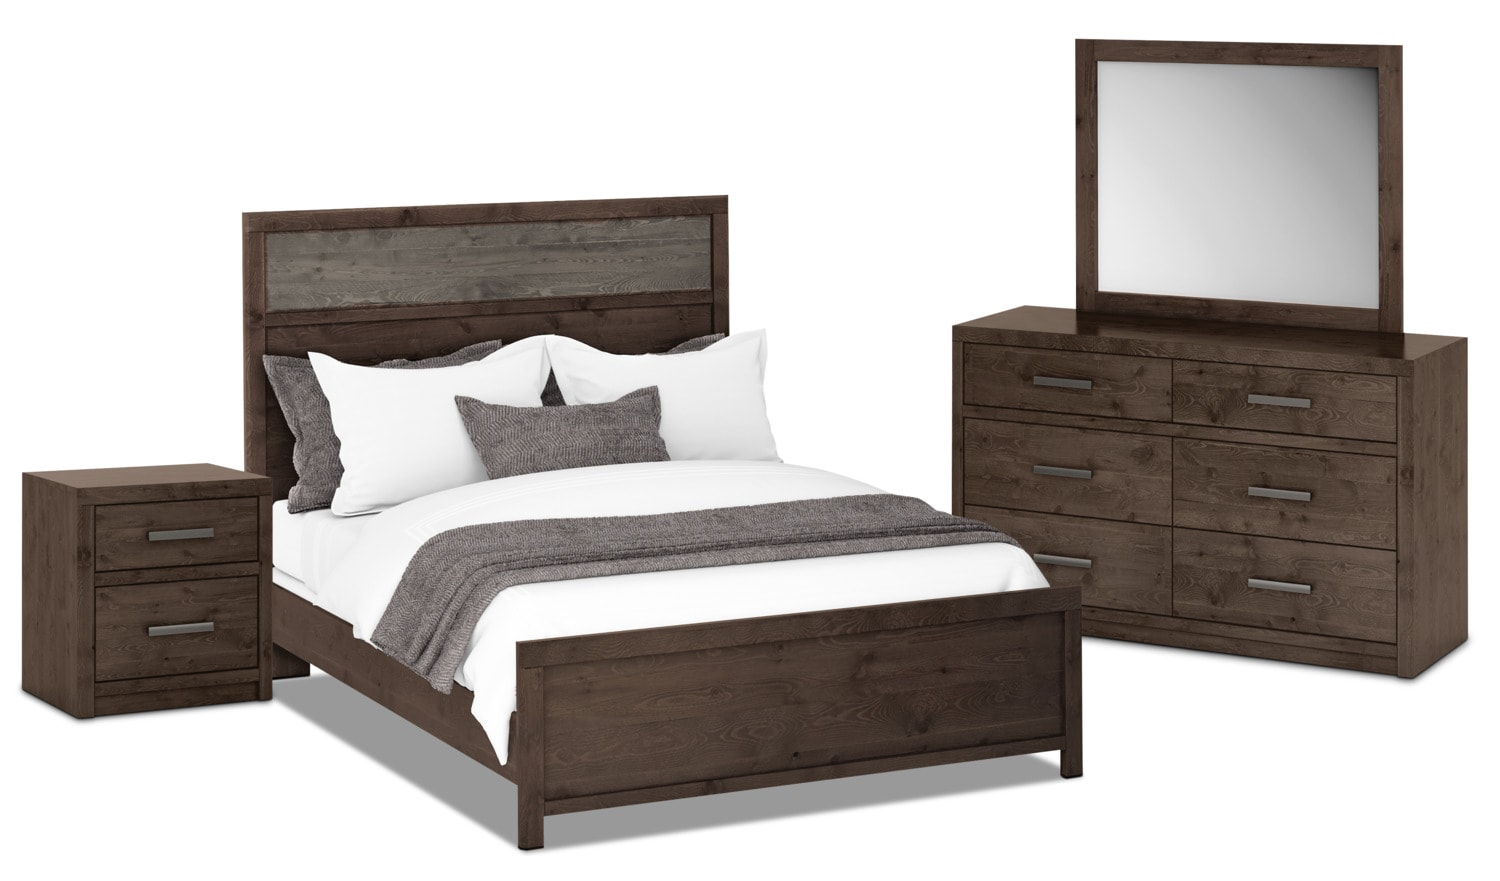 Bedroom Furniture - Onyx 6-Piece Queen Bedroom Package